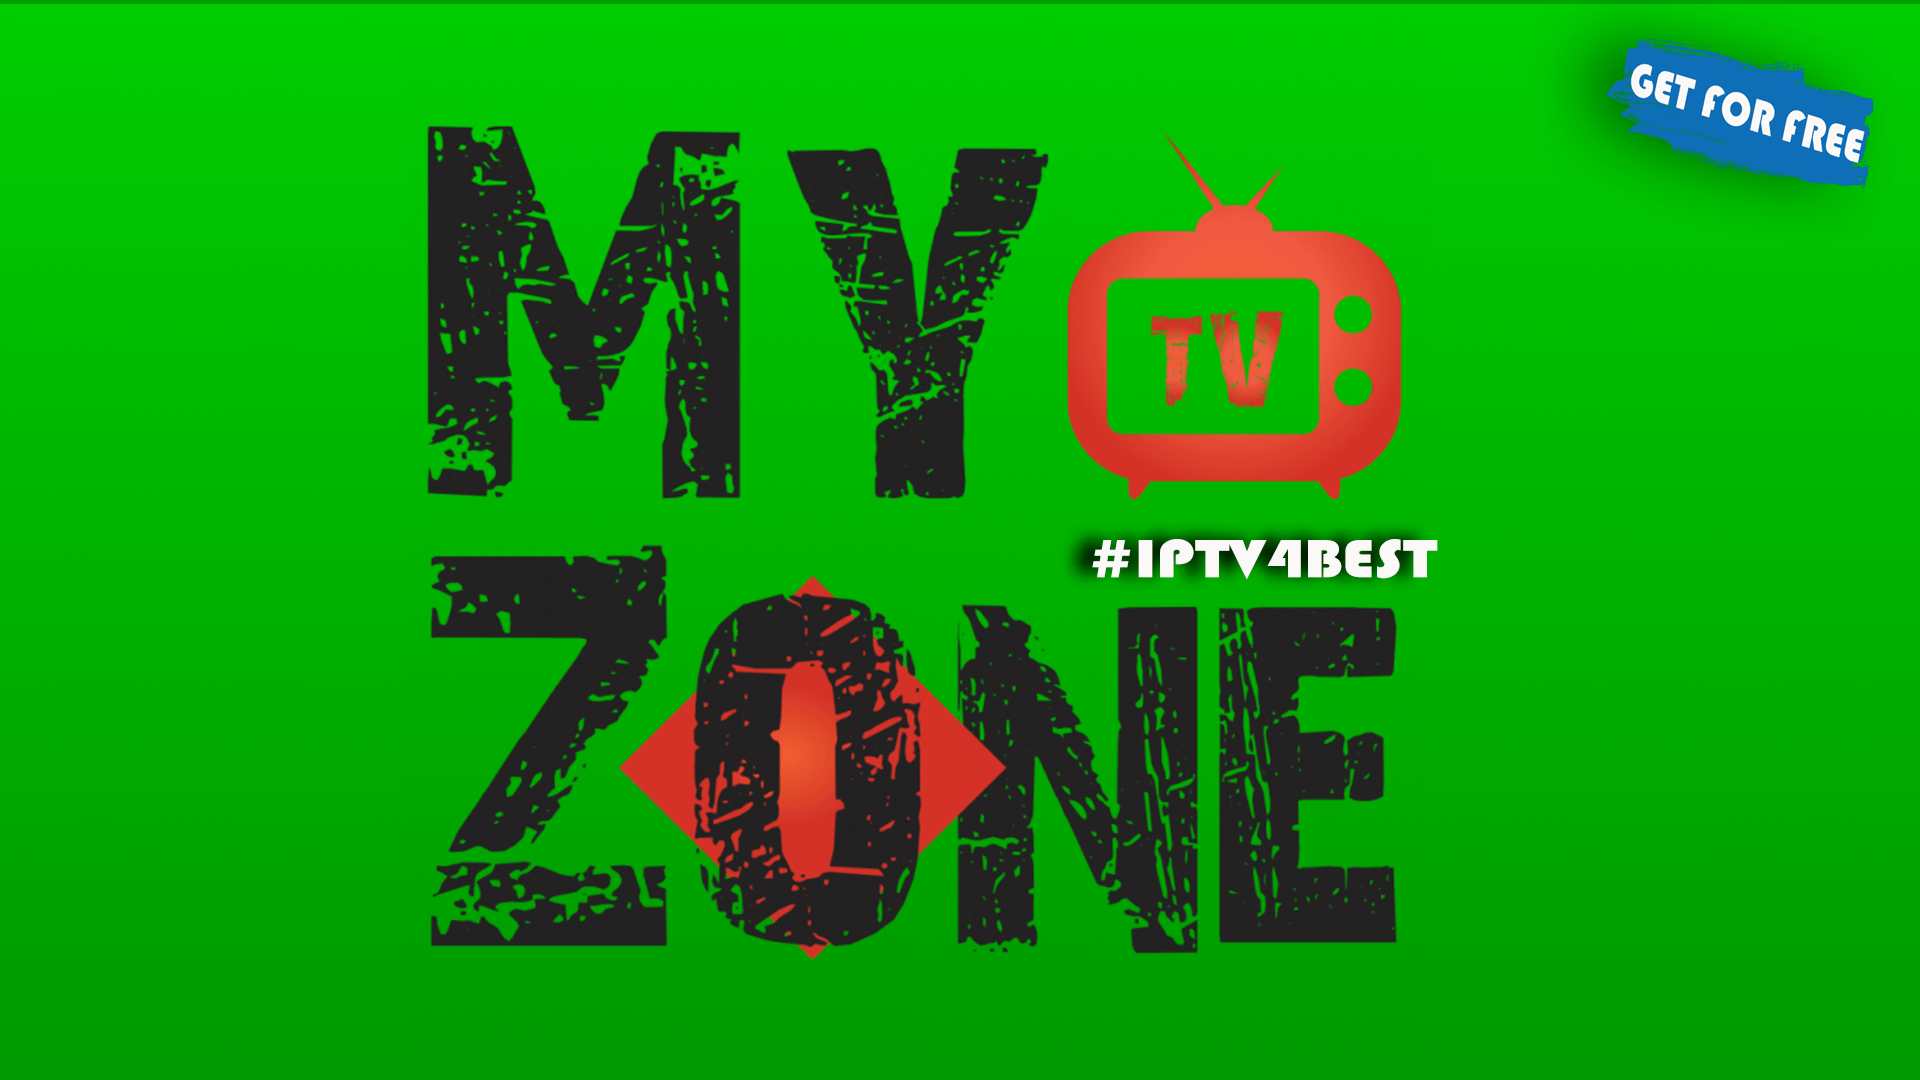 My Tv Zone APK 2021 IPTv Android APK By IPTV4BEST